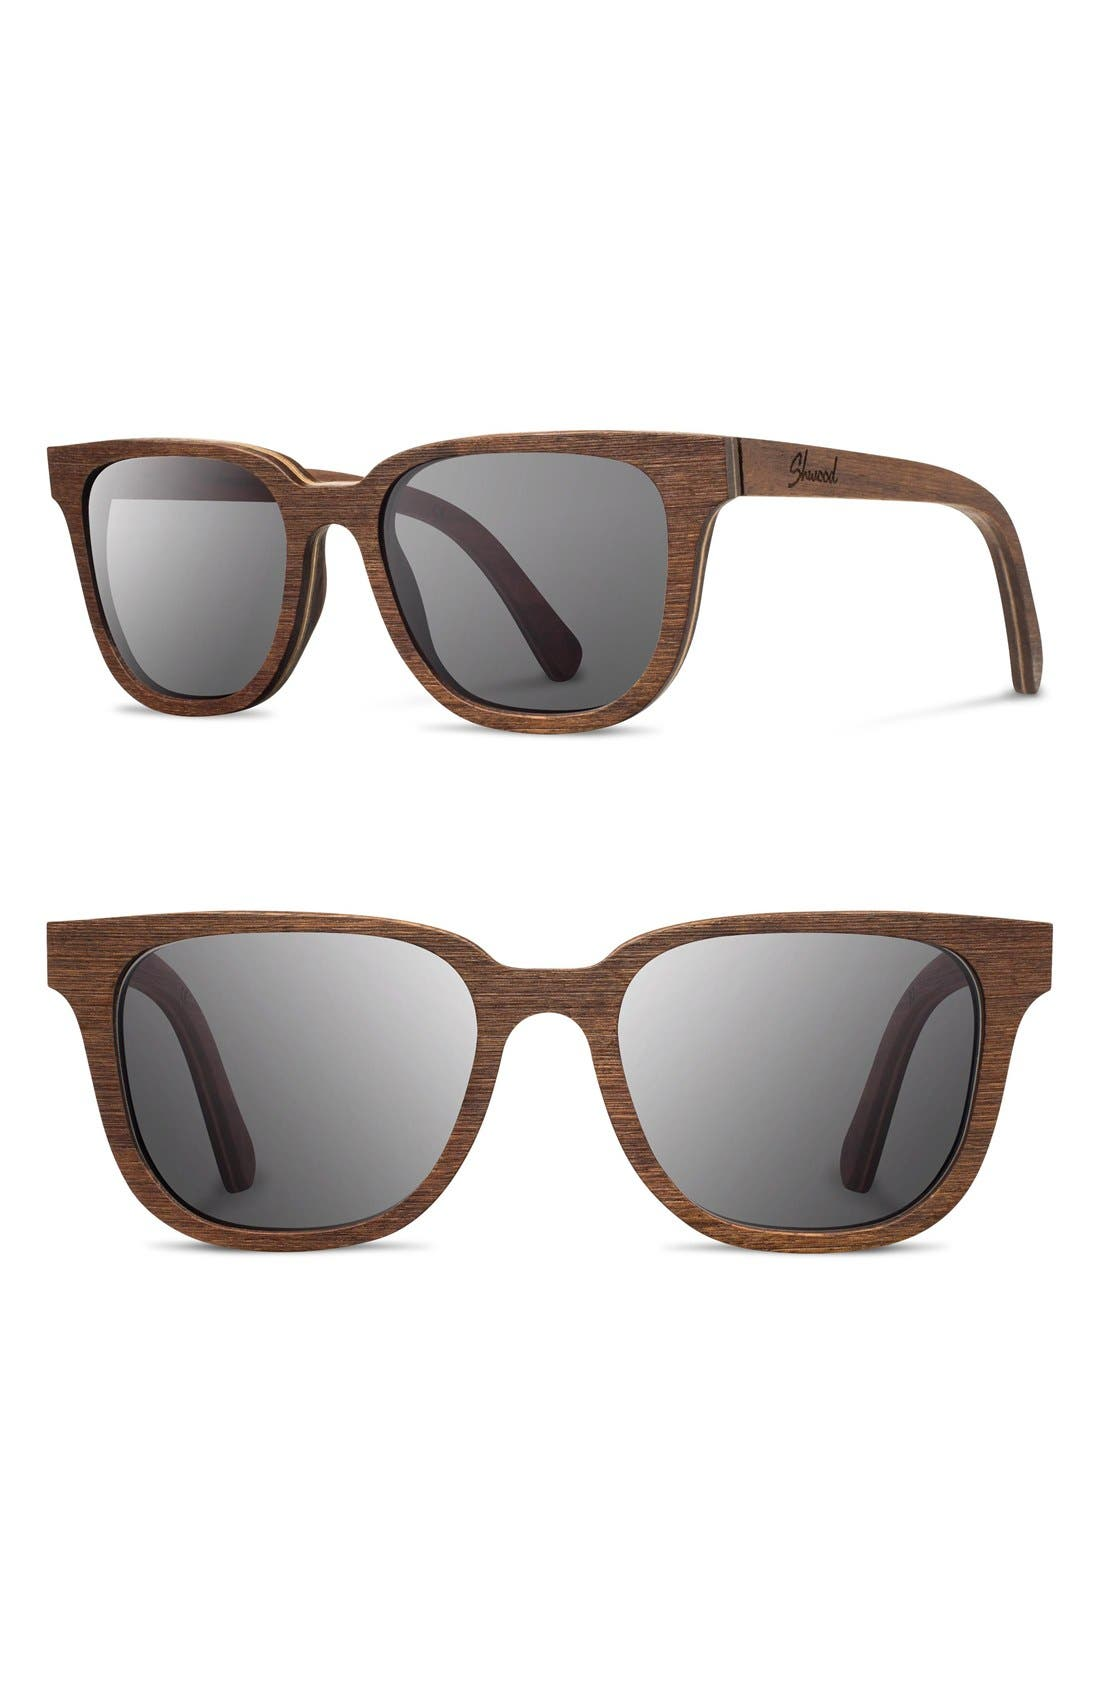 Main Image - Shwood 'Prescott' 52mm Wood Sunglasses